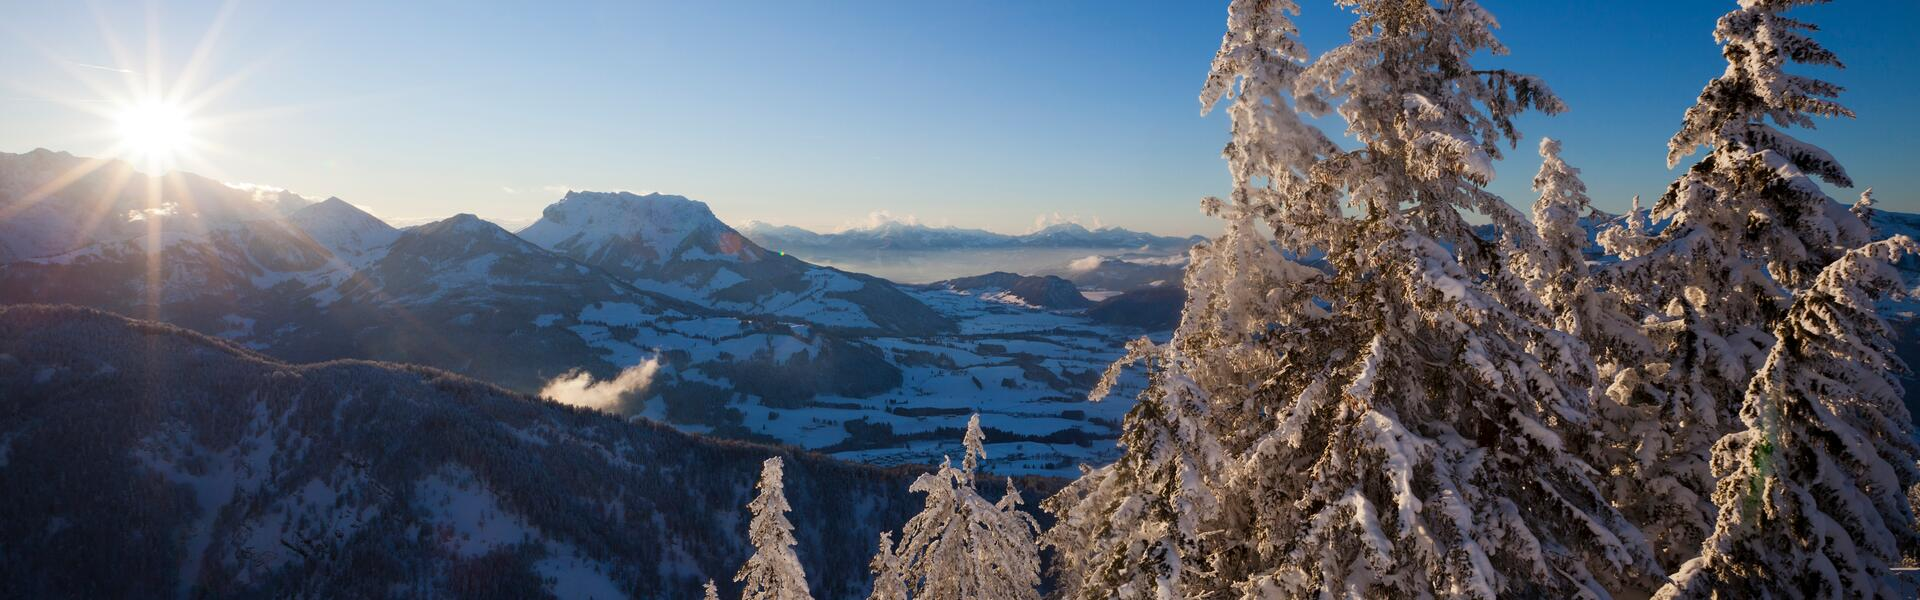 winter holiday tyrol walchsee